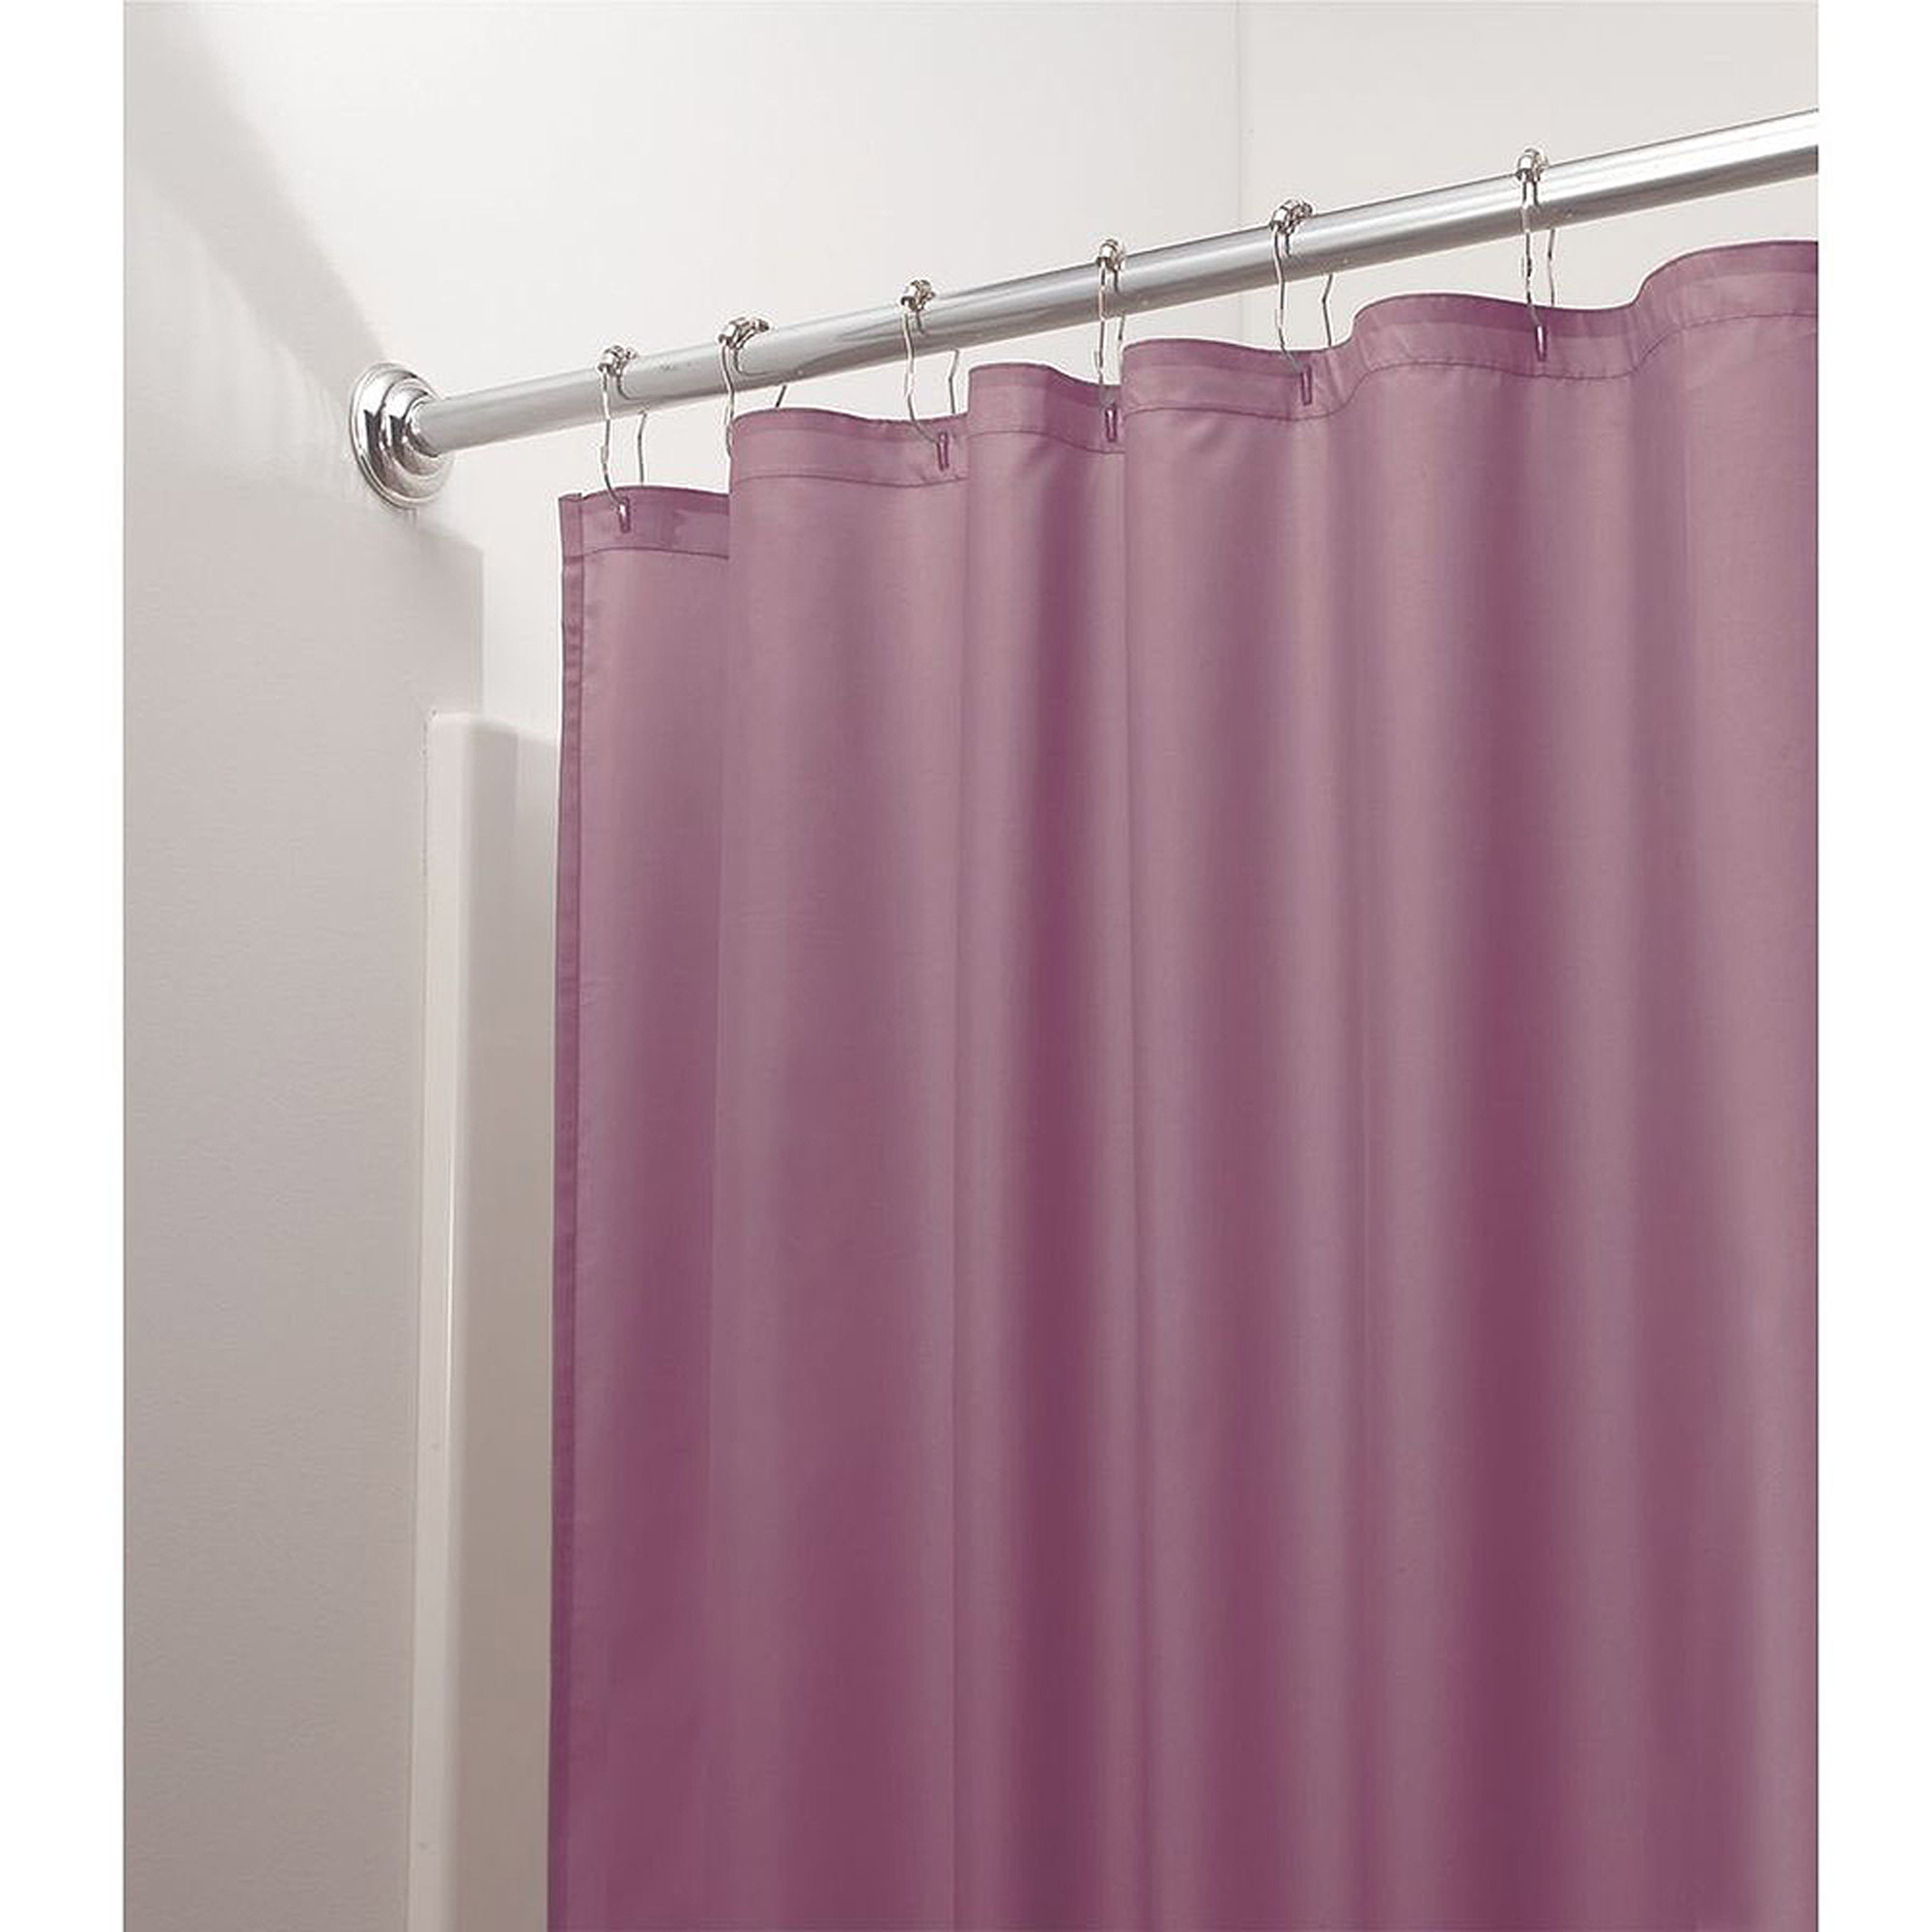 Shower Curtain Liner | Vinyl Shower Curtain Liner | Washable Shower Curtain Liner